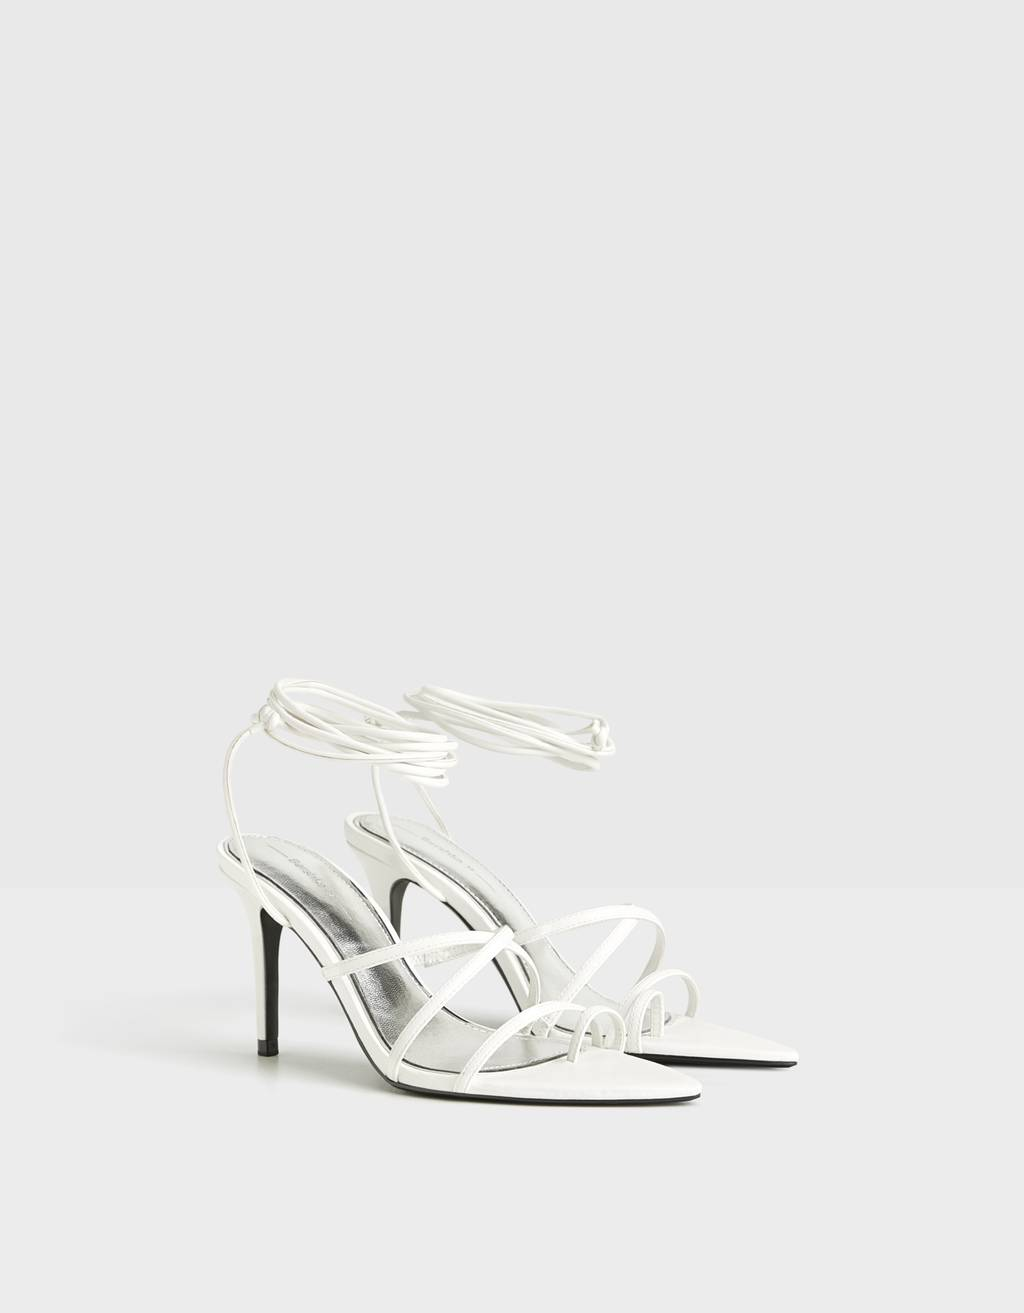 High-heel sandals with straps and tie detail